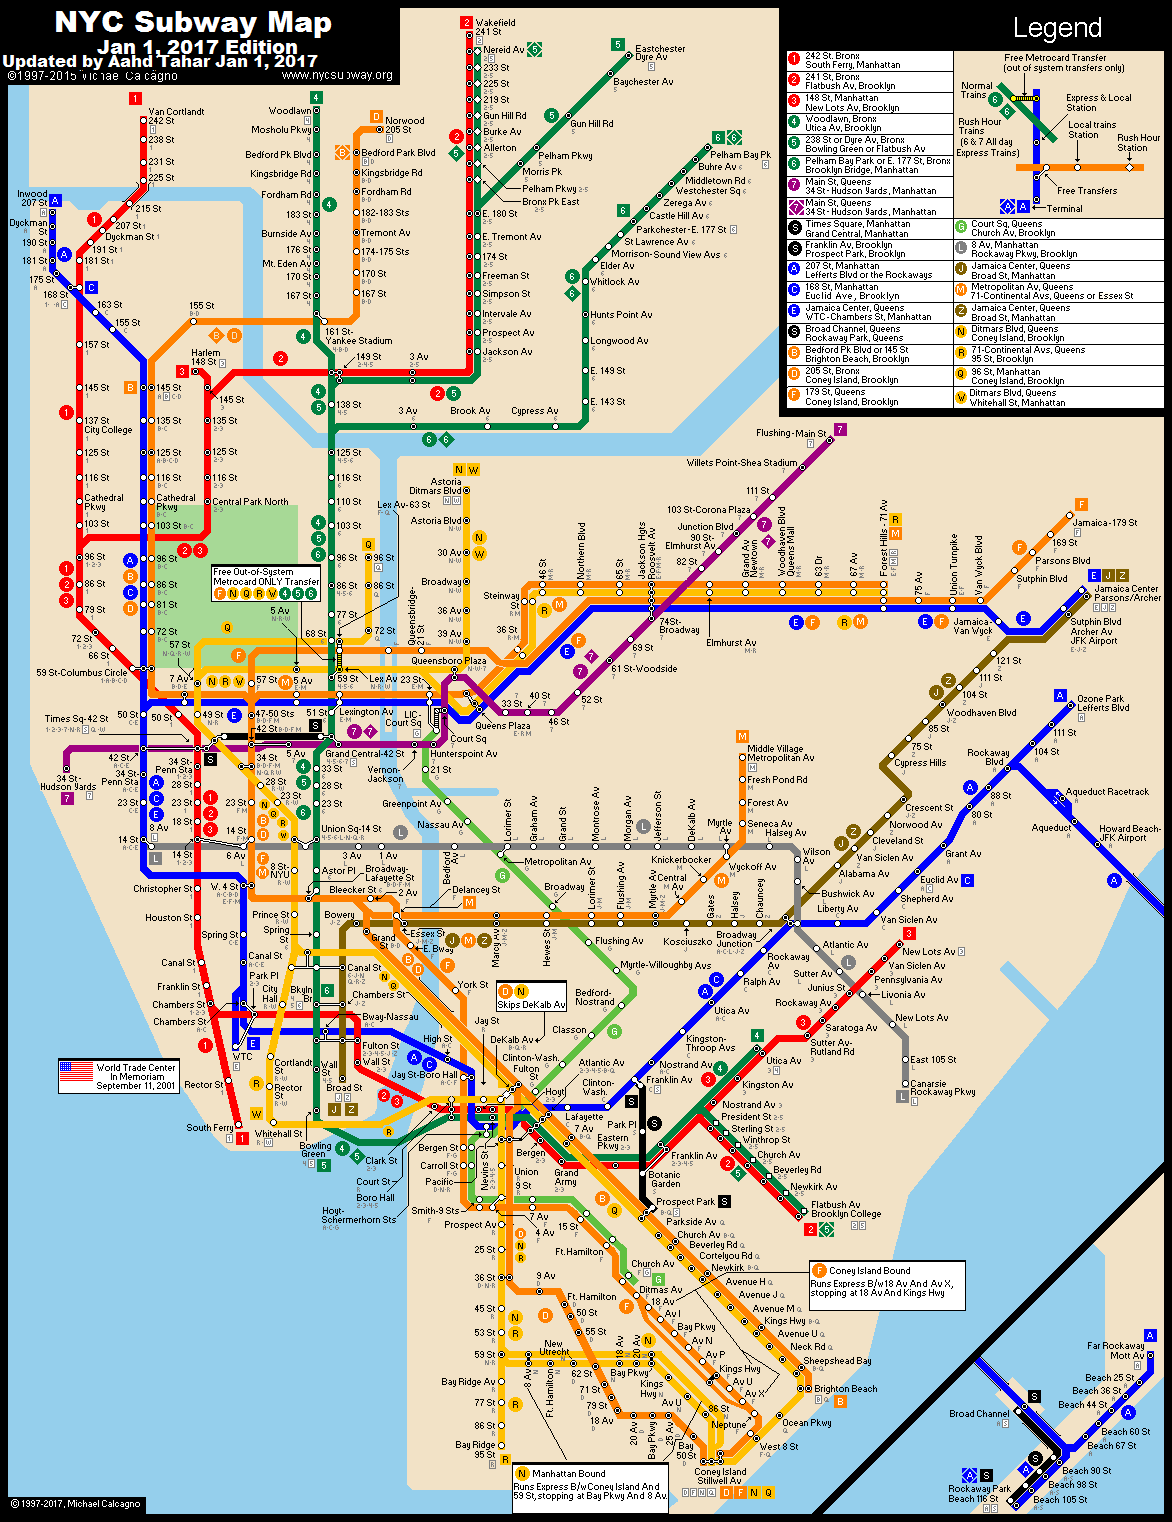 Ny City Subway Map .nycsubway.org: New York City Subway Route Map by Michael Calcagno Ny City Subway Map